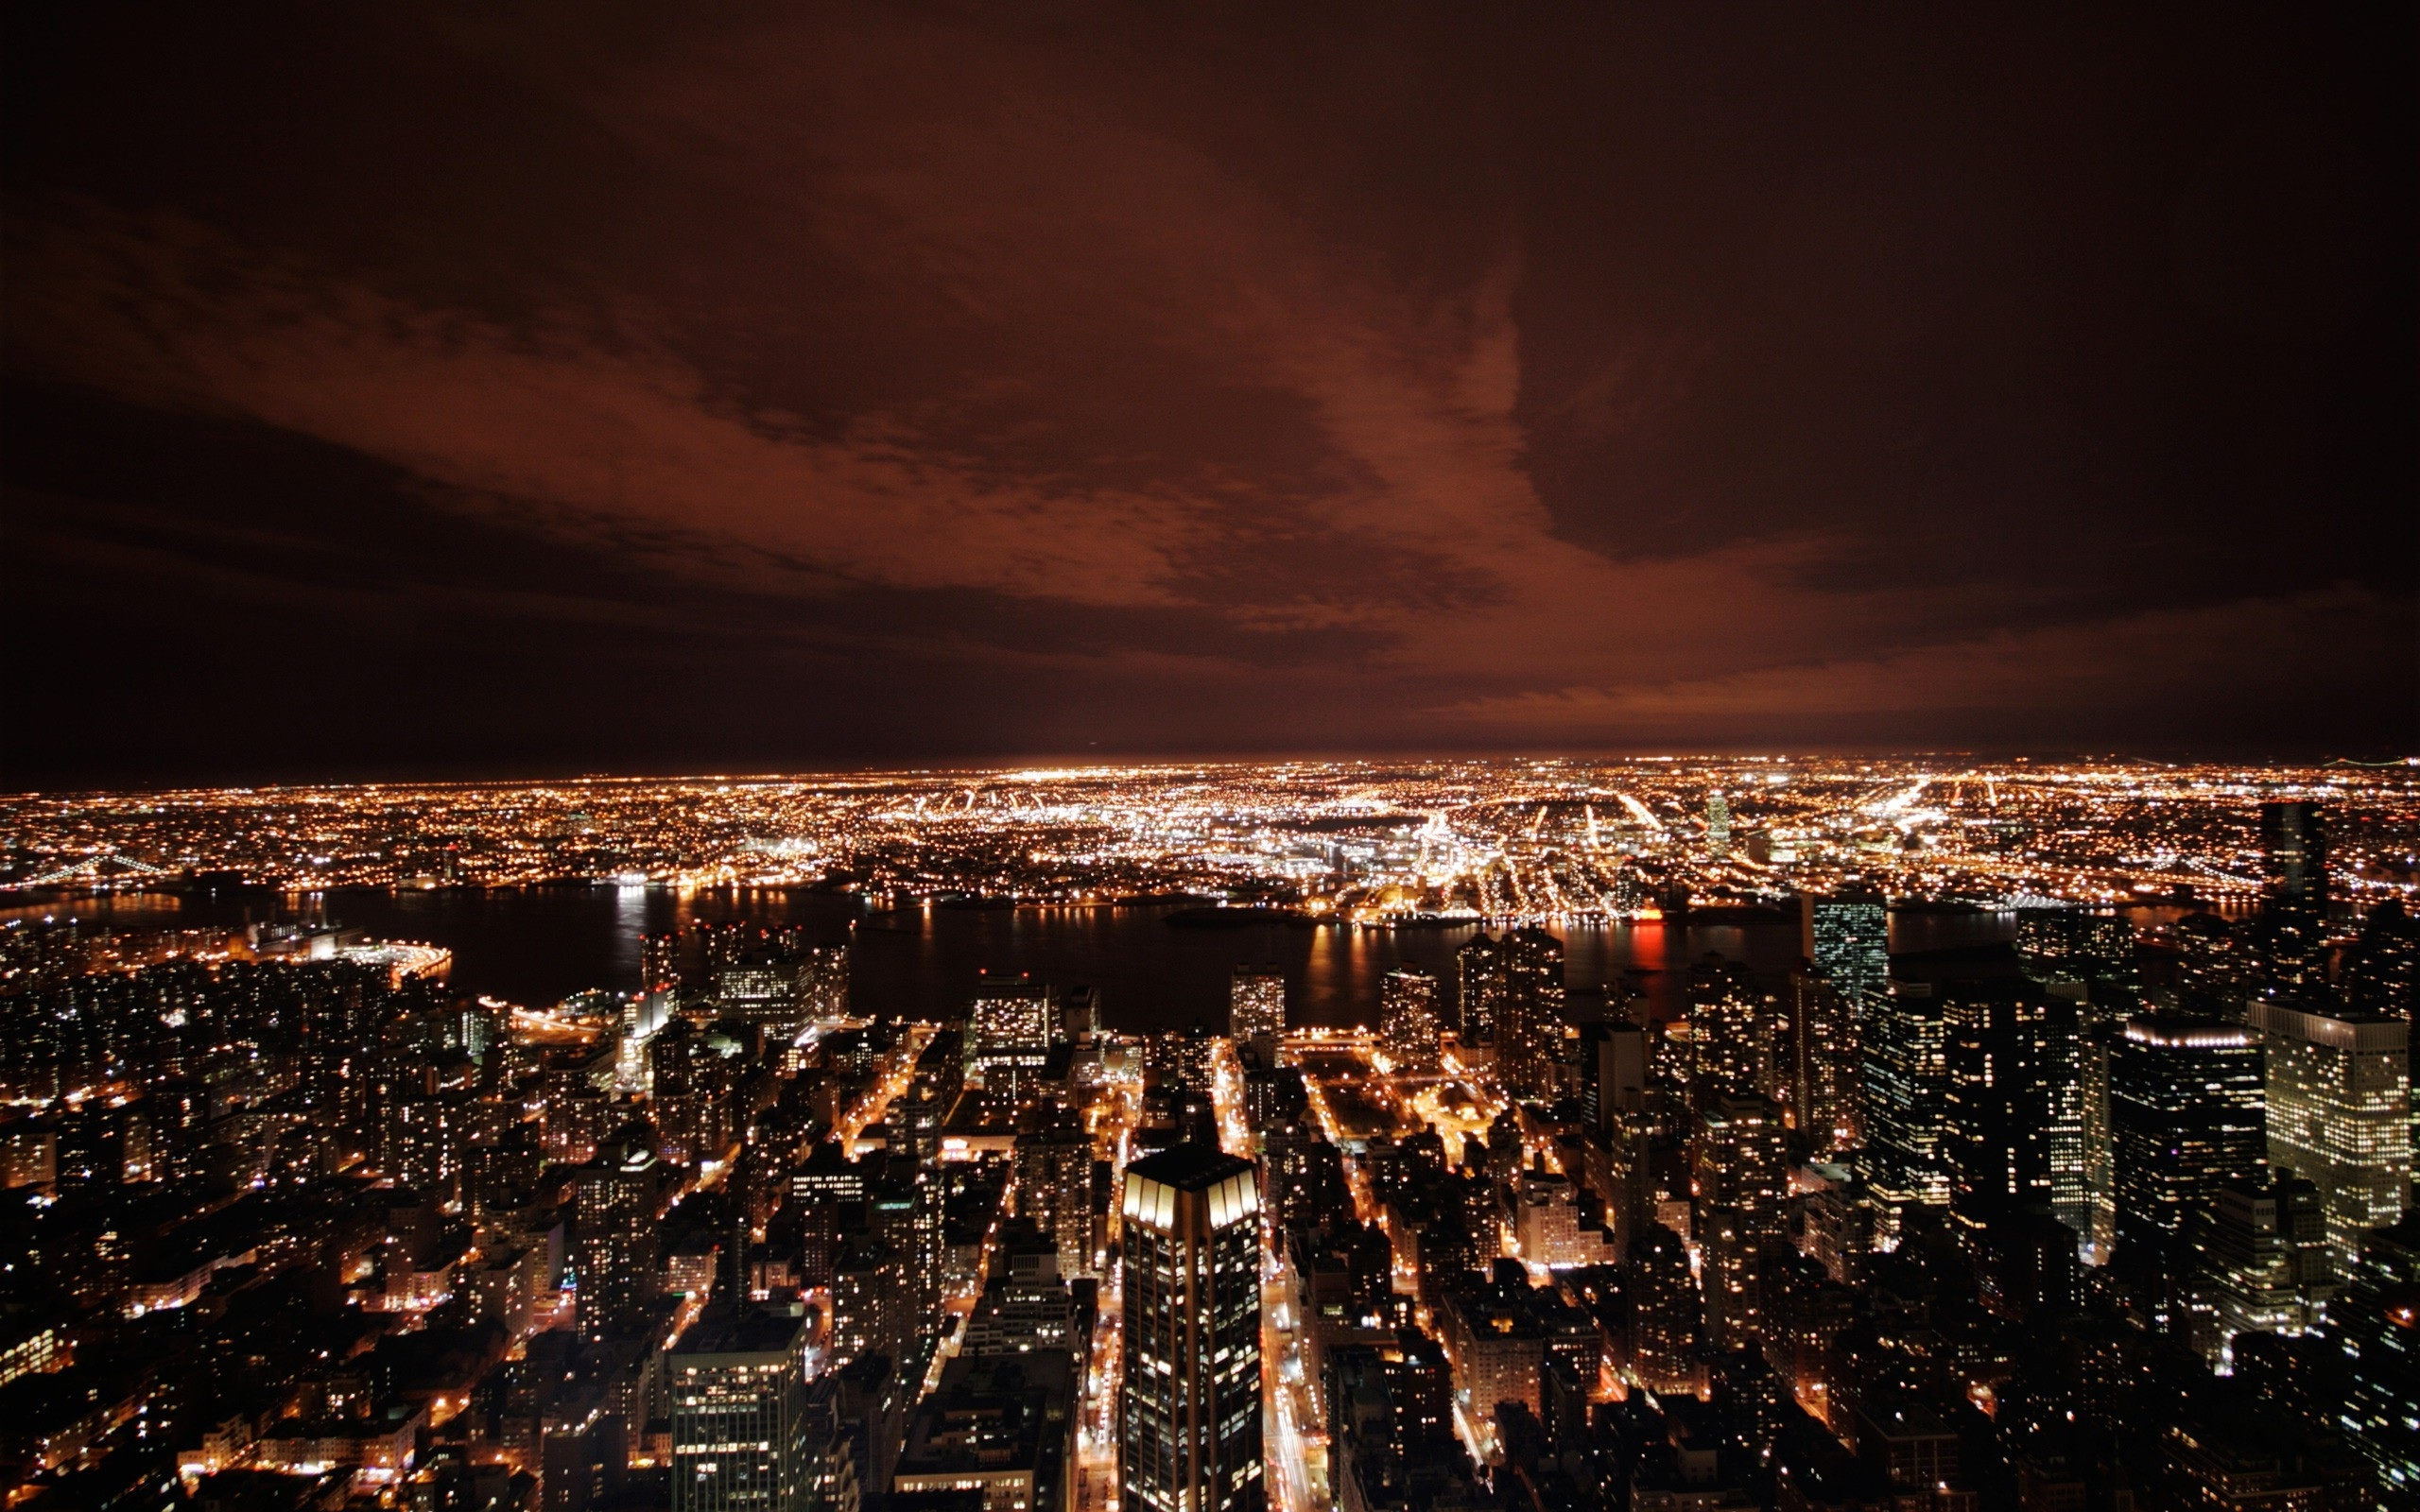 Big City Lights by Night   Desktop Backgrounds 2560x1600